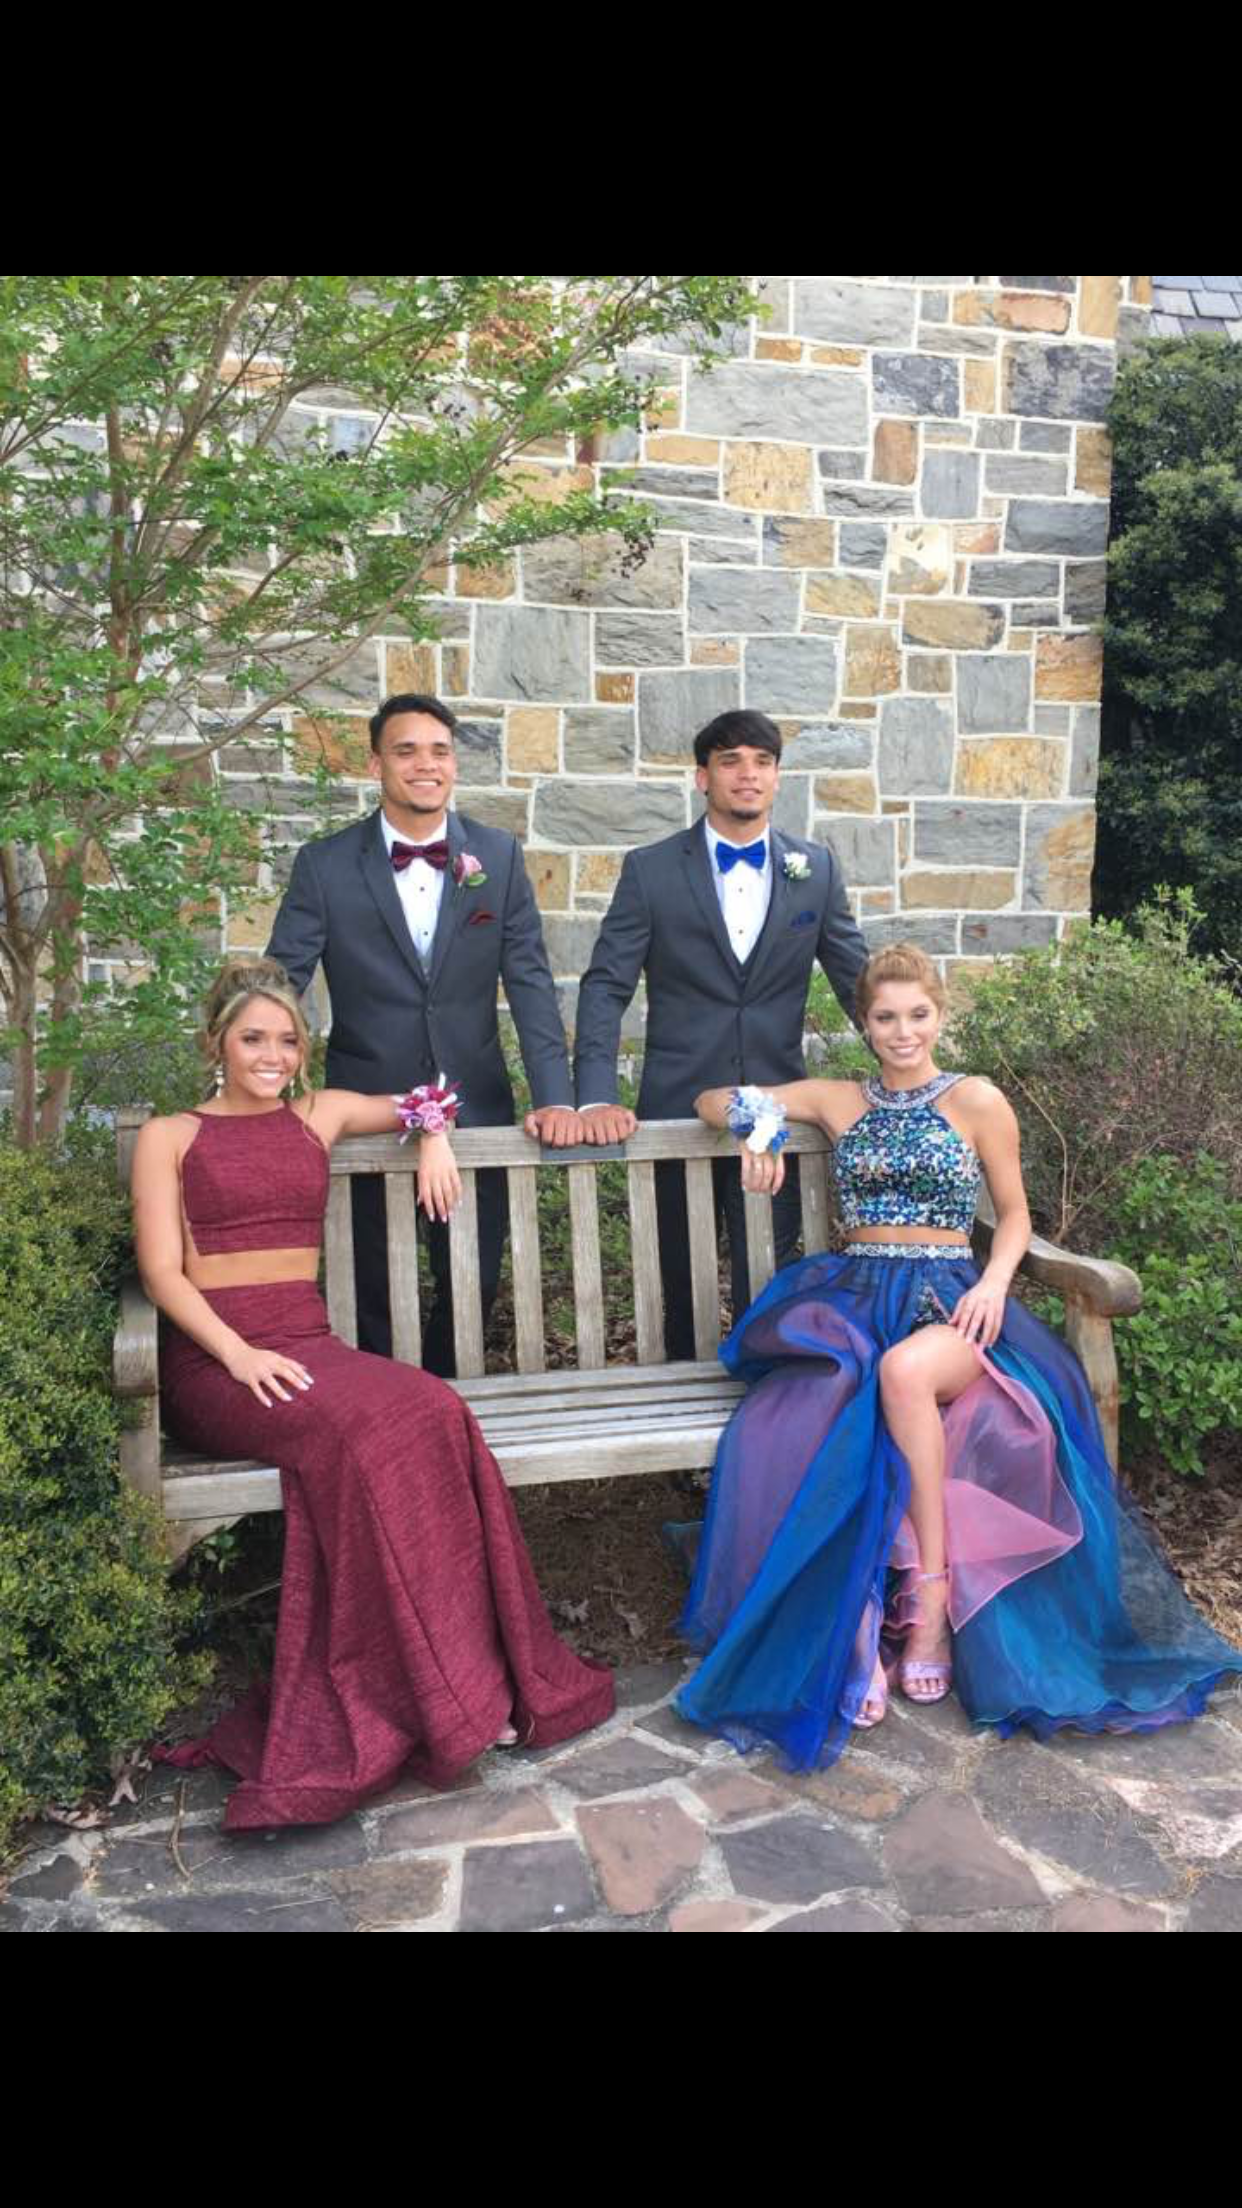 Pin by samm mccarty on prom pinterest prom pictures prom poses